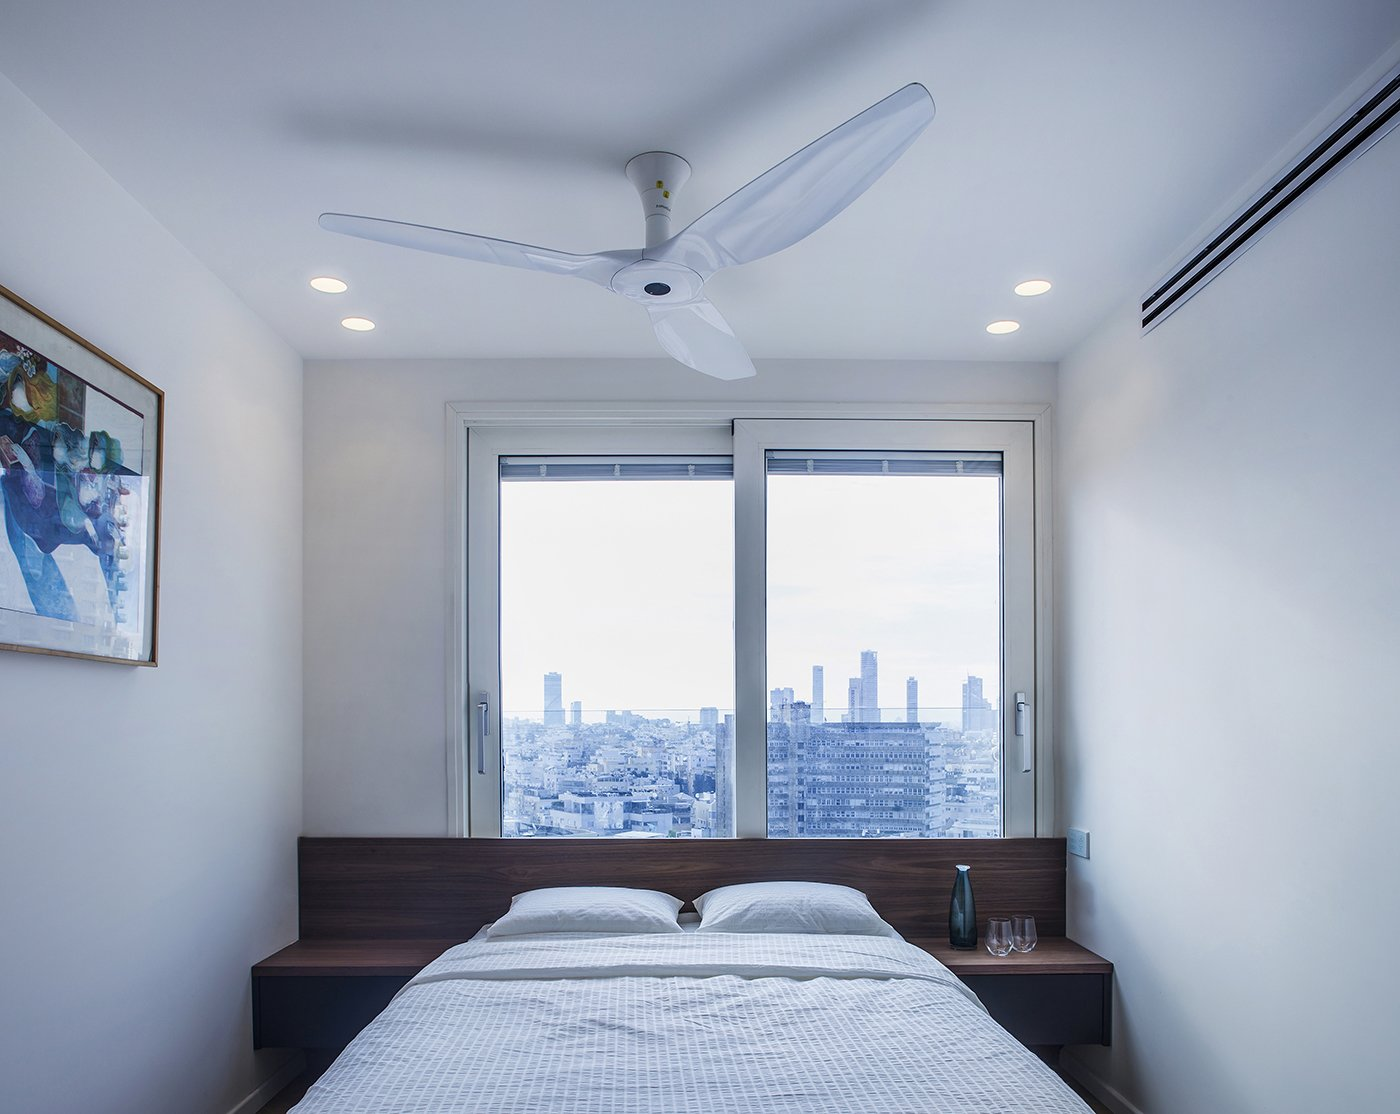 As part of the update, the two bedrooms were expanded, and a number of smart features were added: automated lighting and curtains, along with double glazed windows with an electric shading system.  A Compact, Renovated Apartment in a Tel Aviv Tower by Allie Weiss